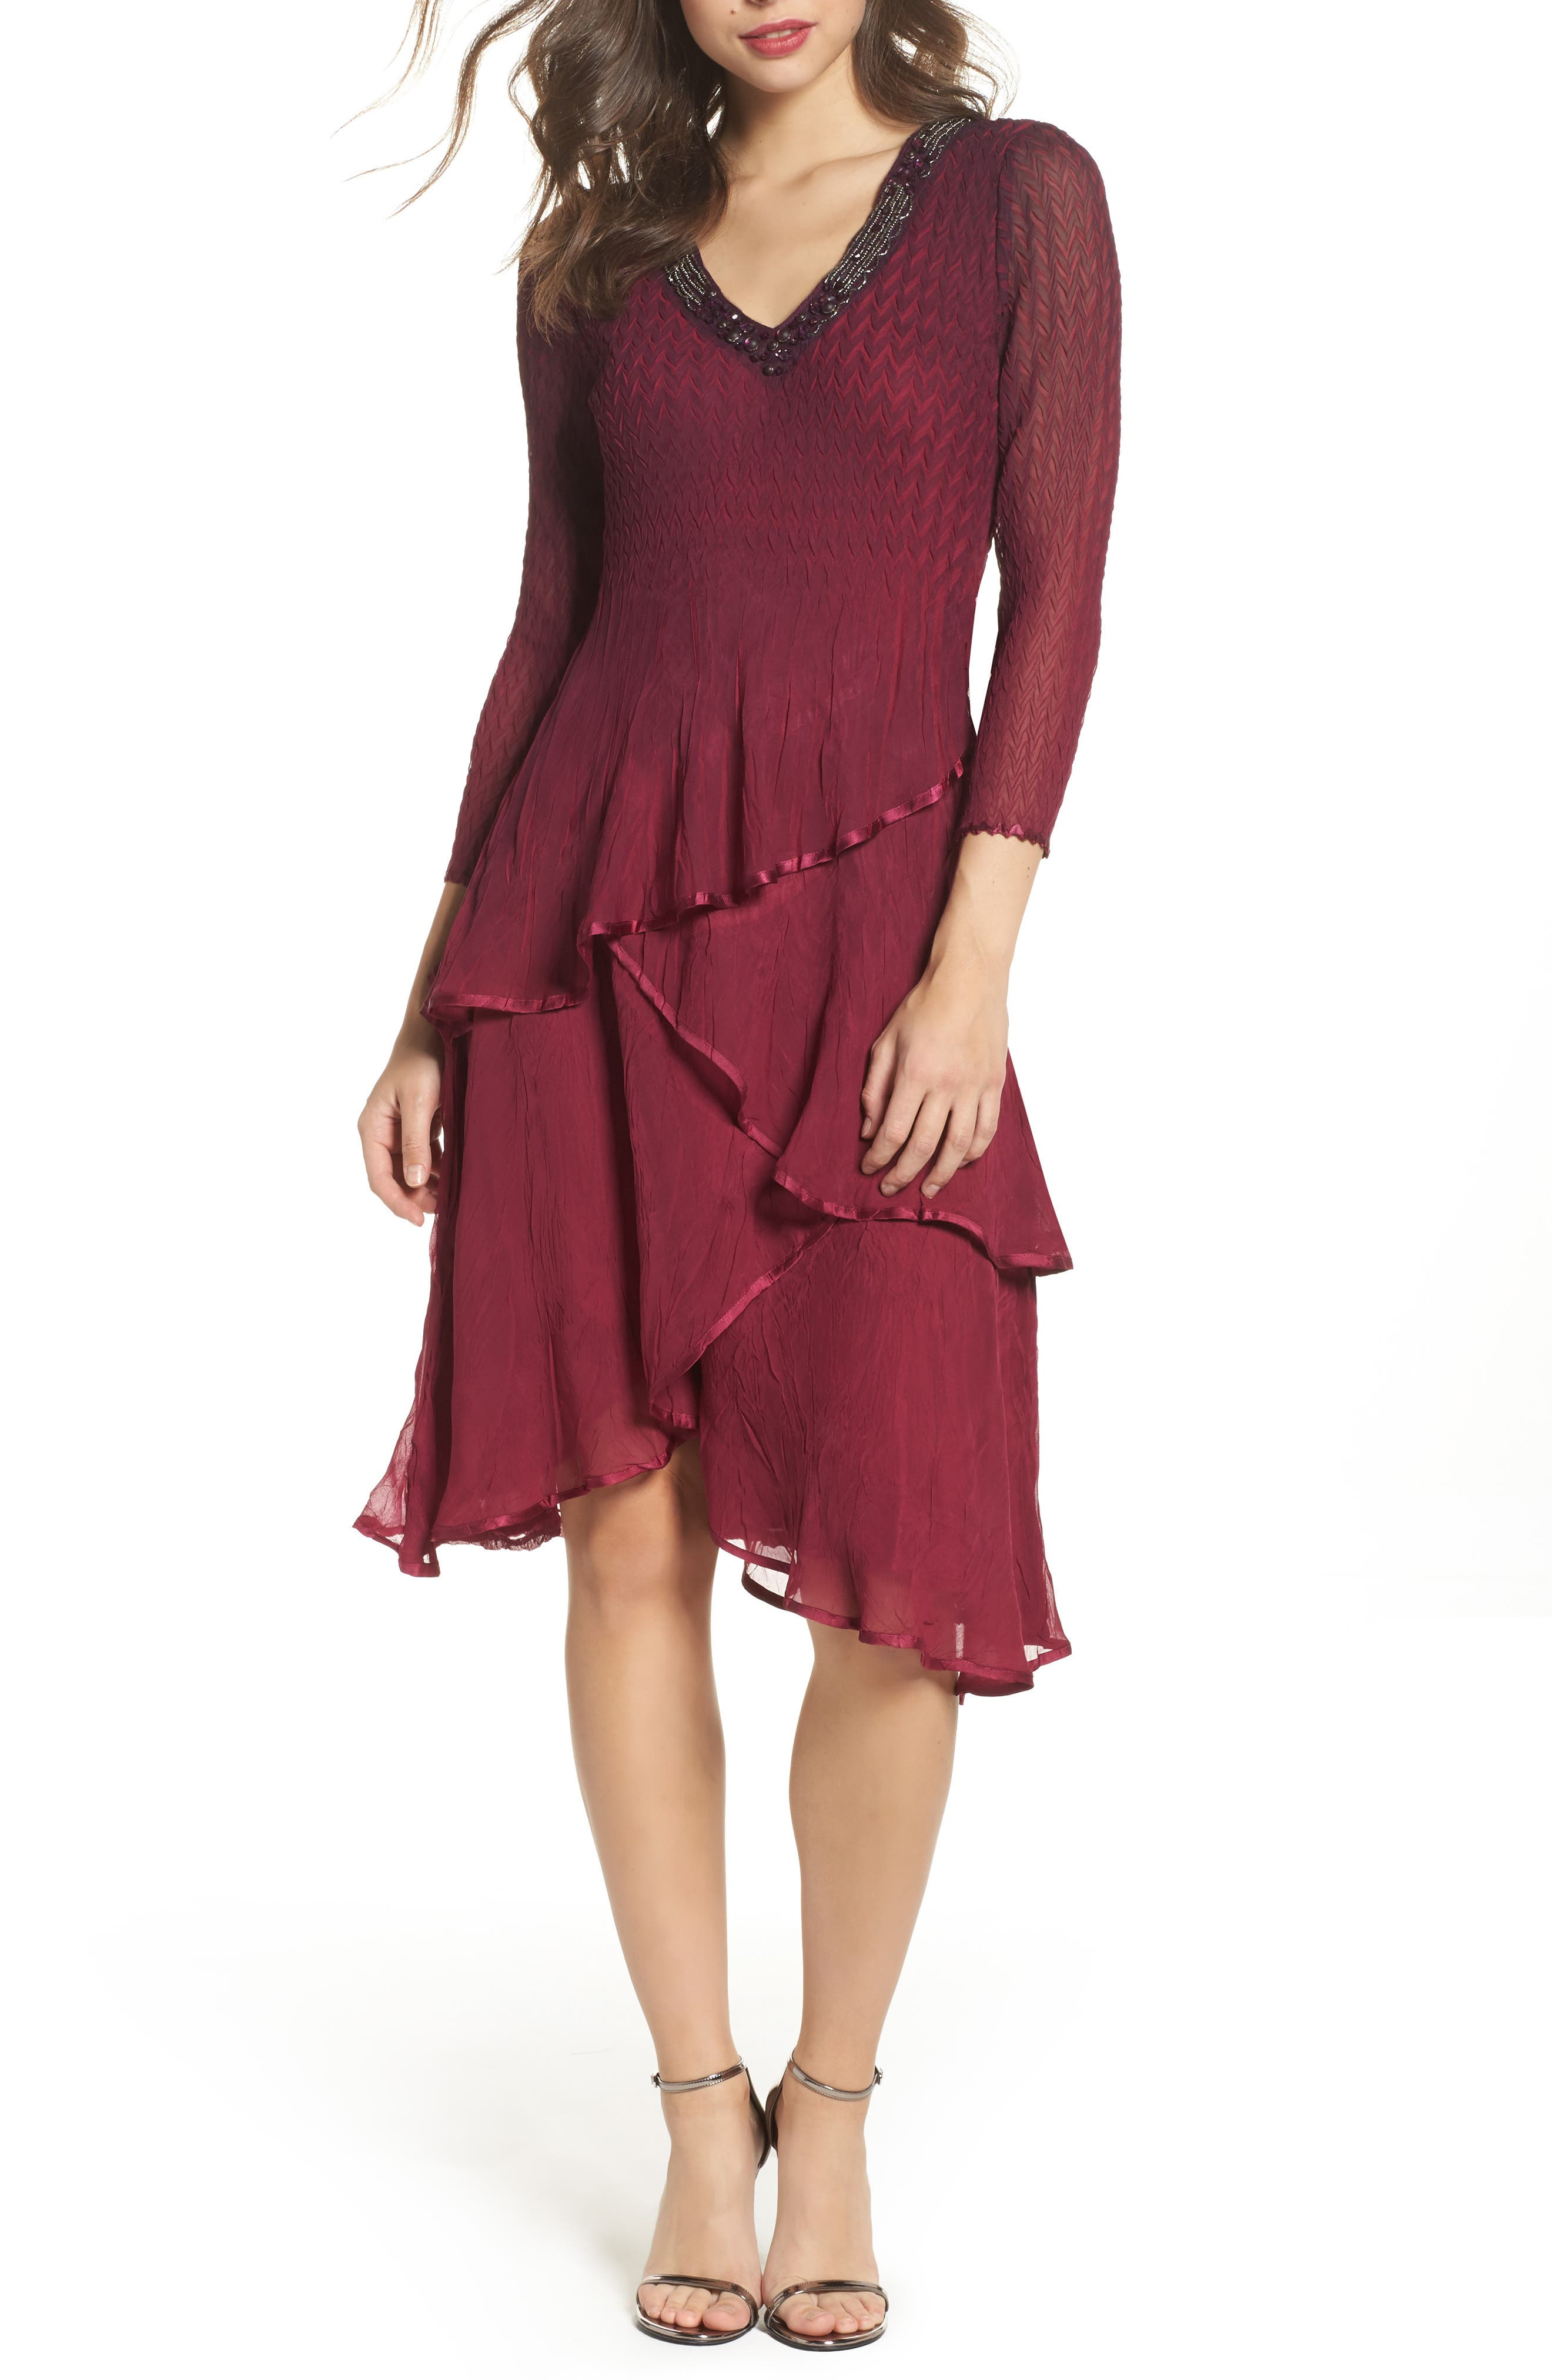 Tiered Ombré Charmeuse & Chiffon Dress,                         Main,                         color, Red Plum Blue Ombre